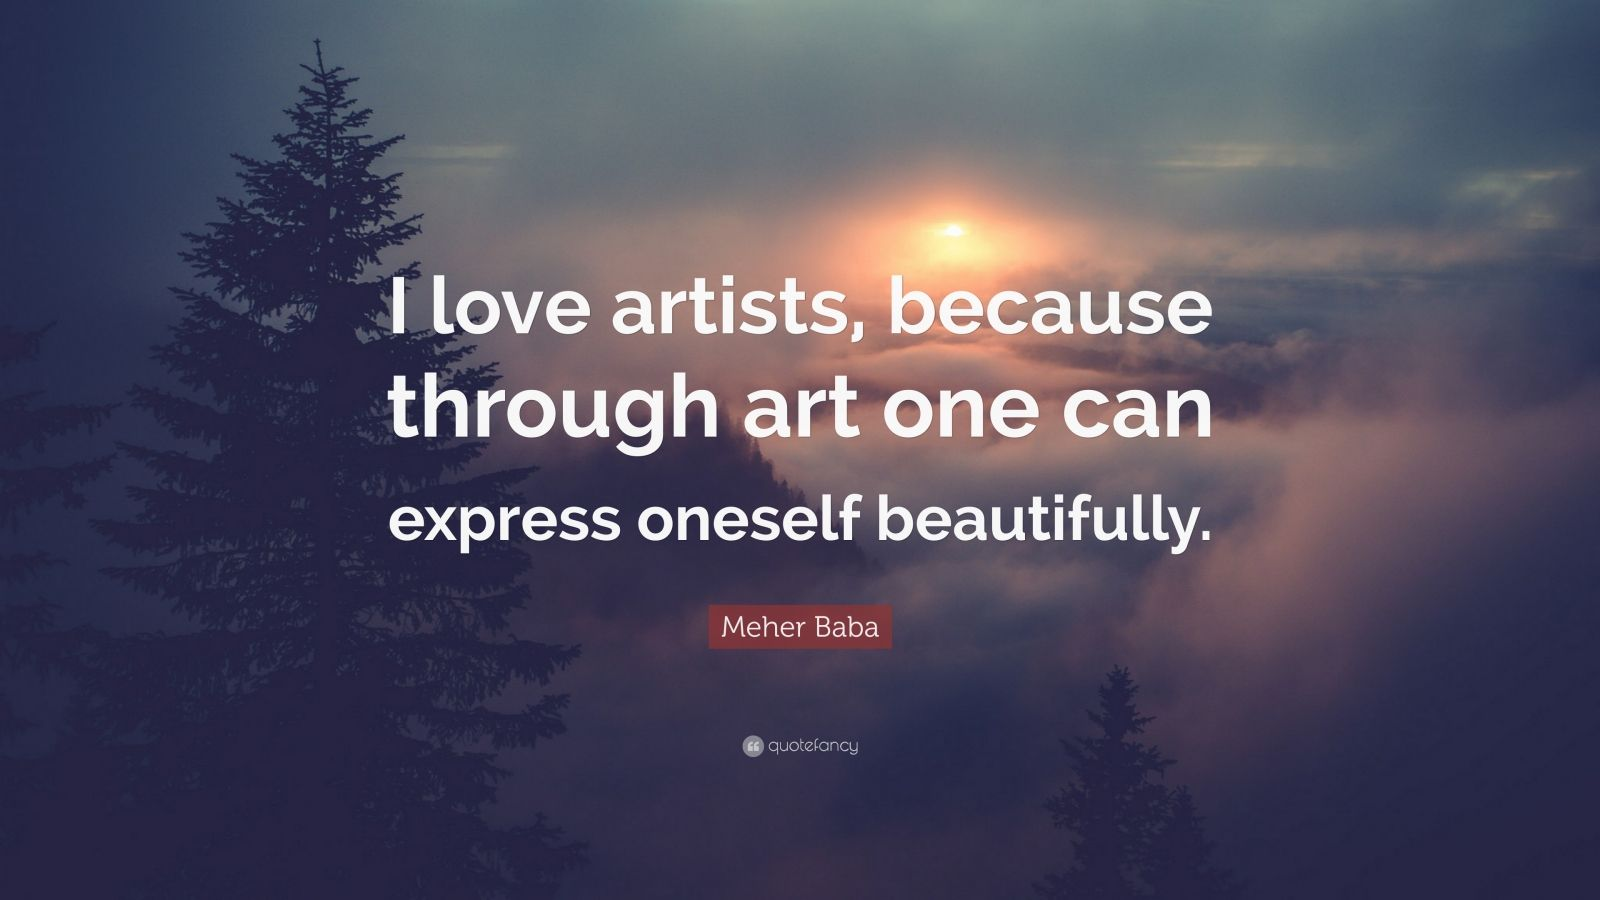 """Meher Baba Quote: """"I love artists, because through art one can express oneself beautifully."""""""